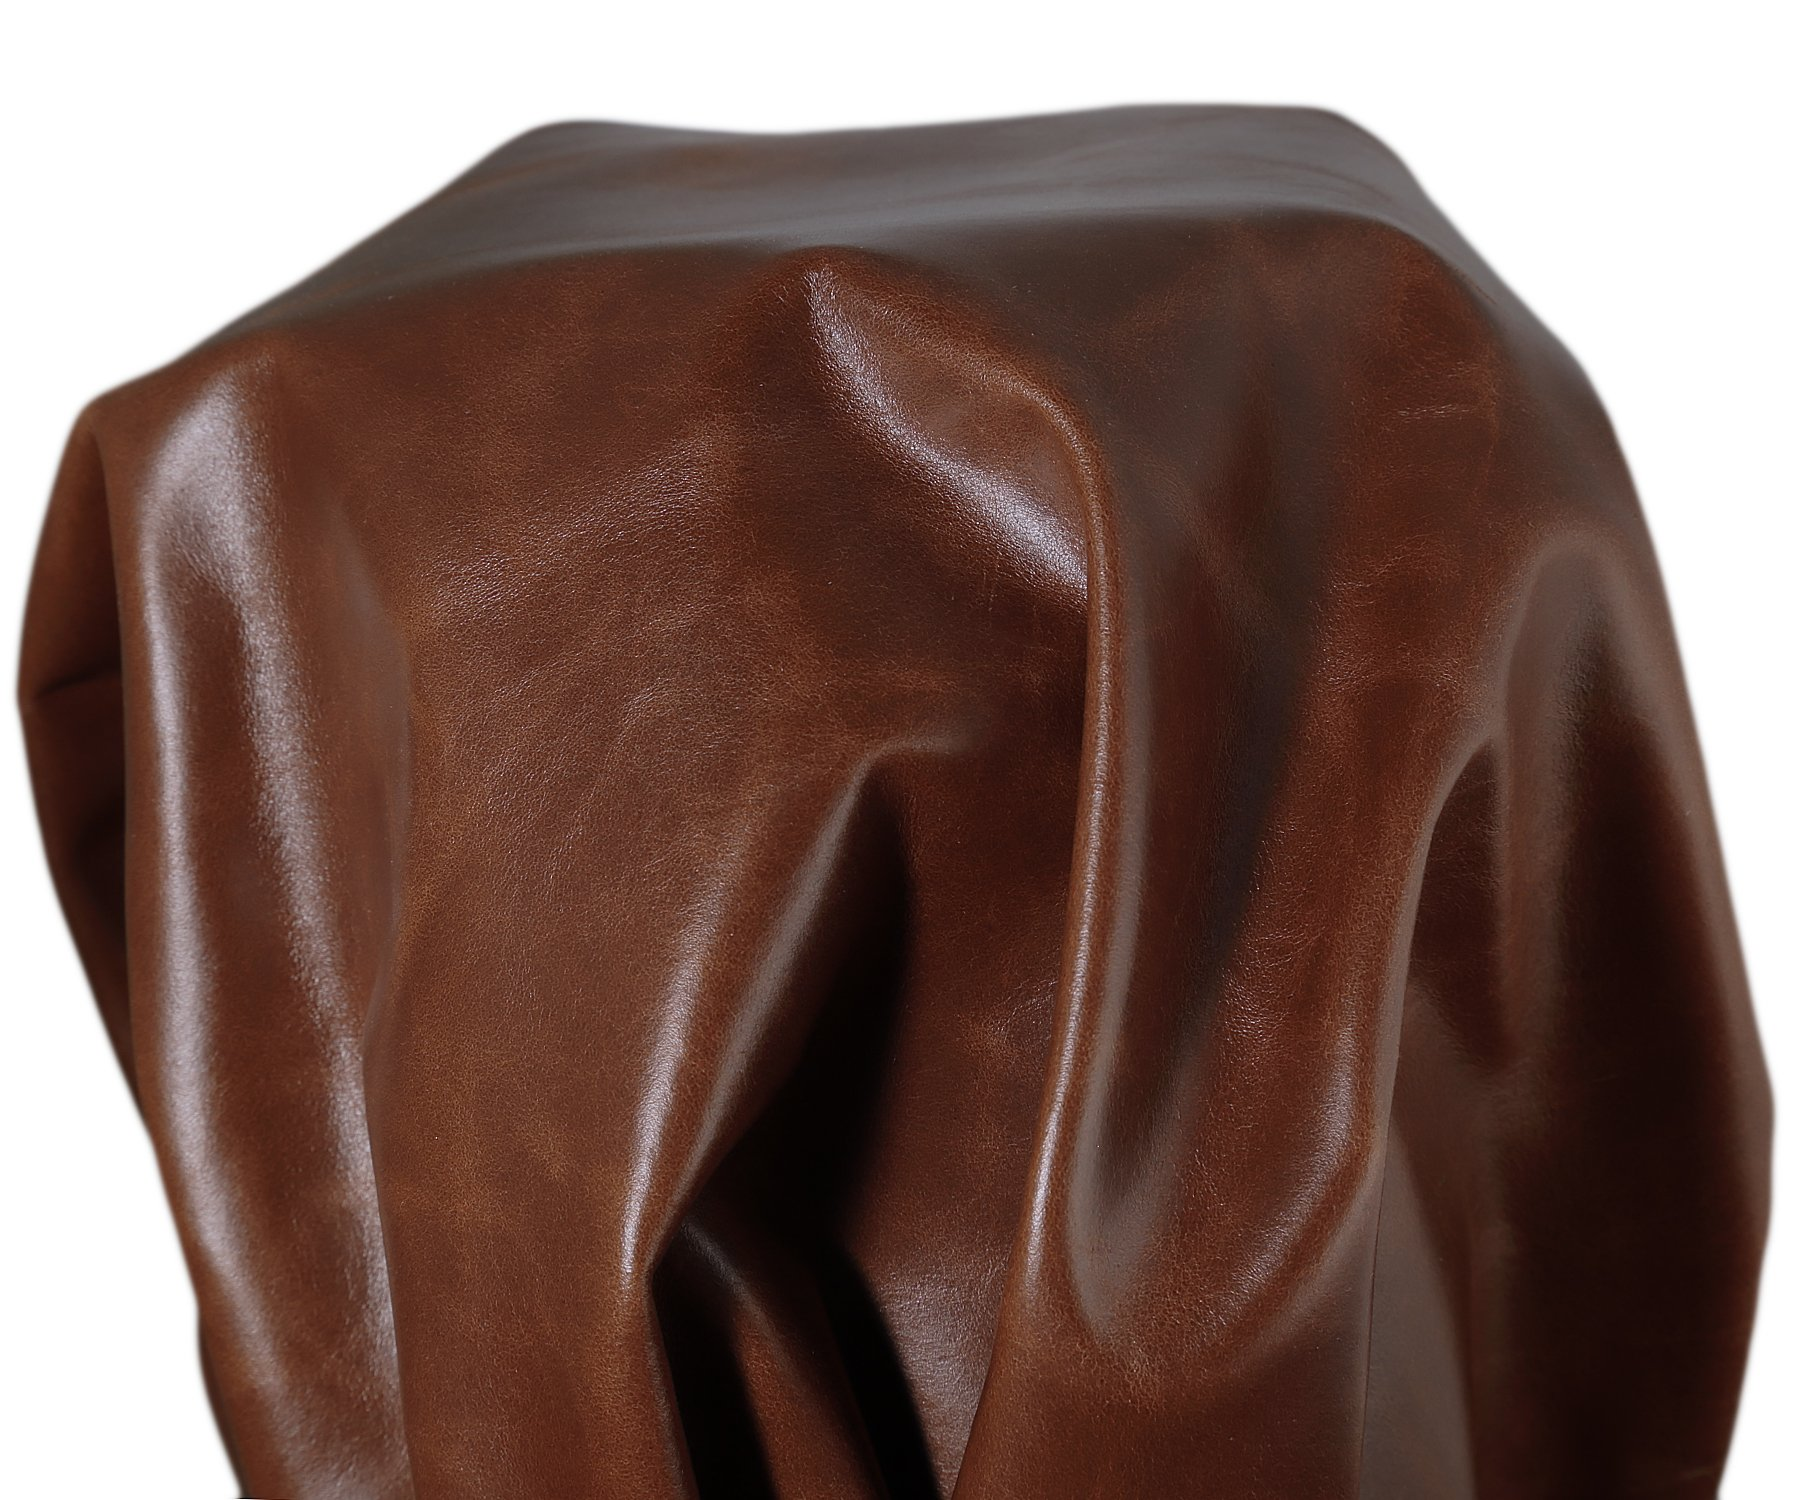 NAT Leathers Tan Brown Oil Pull-up two tone Italian 16-20 Square Feet (about 28x 50 inches in main part of skin) Nappa Soft Upholstery Chap Handbag Cowhide Genuine Cow Leather Hide Skin (16-20 Sq. Ft)